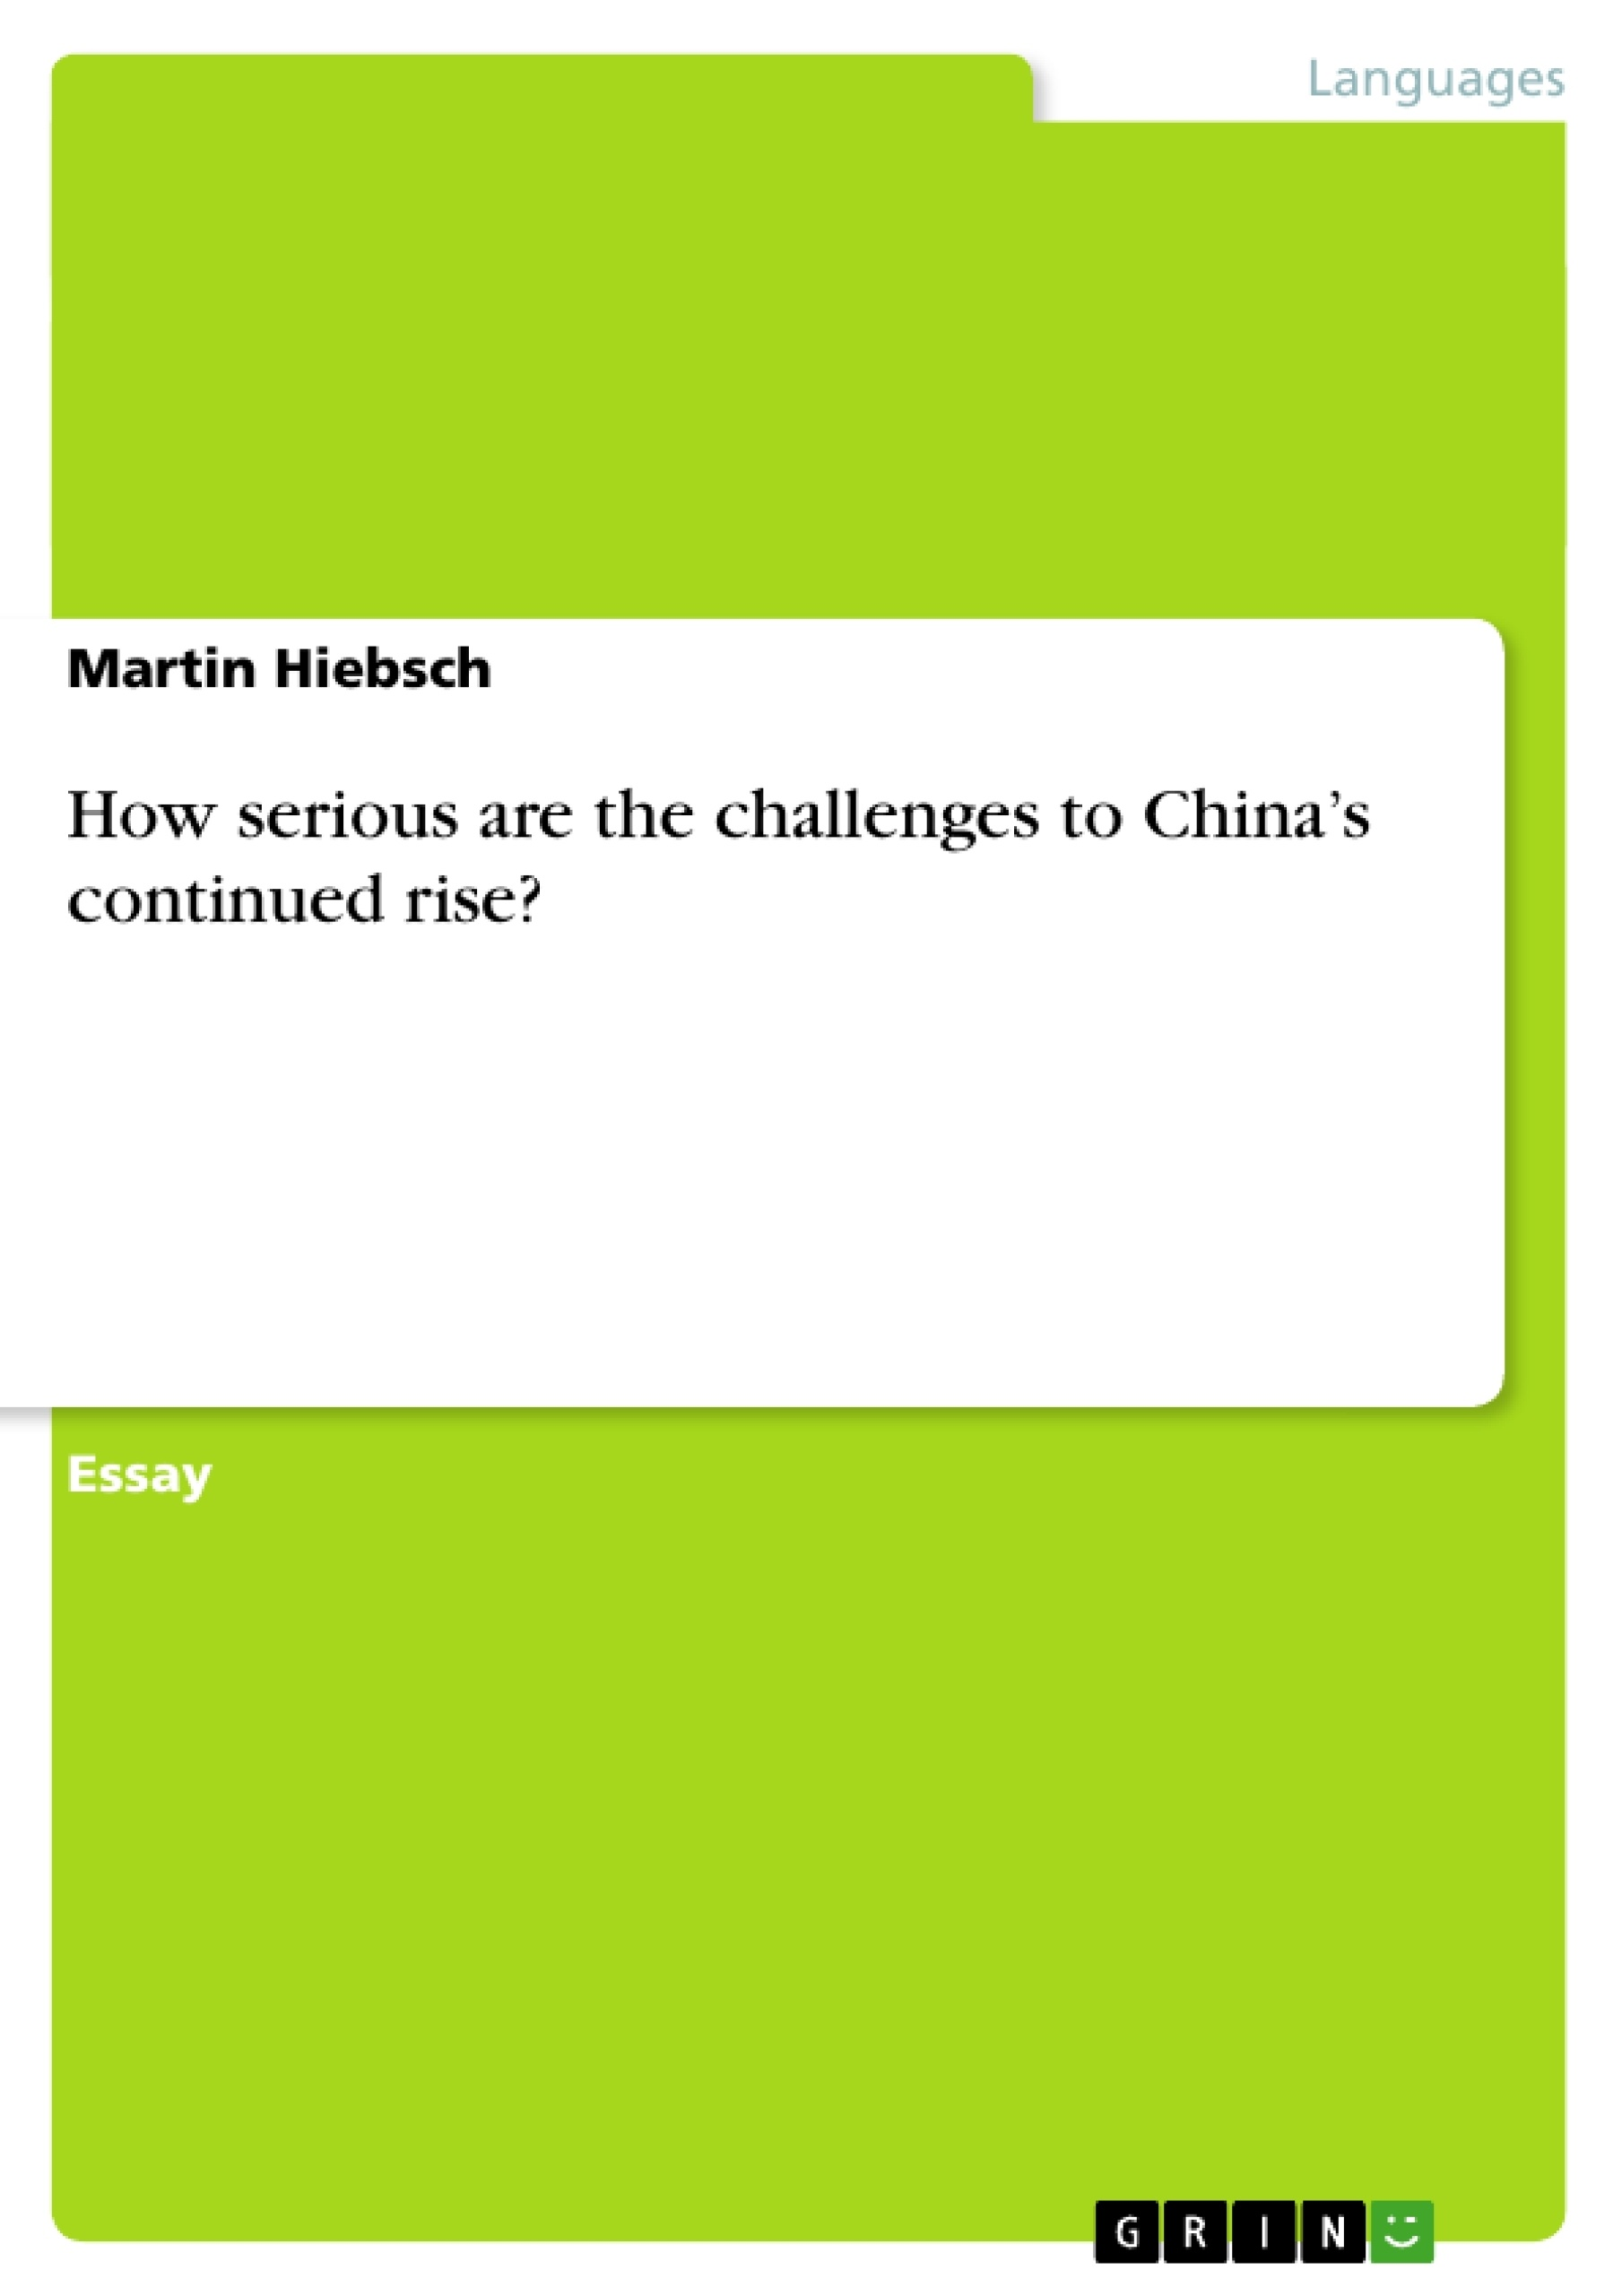 Title: How serious are the challenges to China's continued rise?